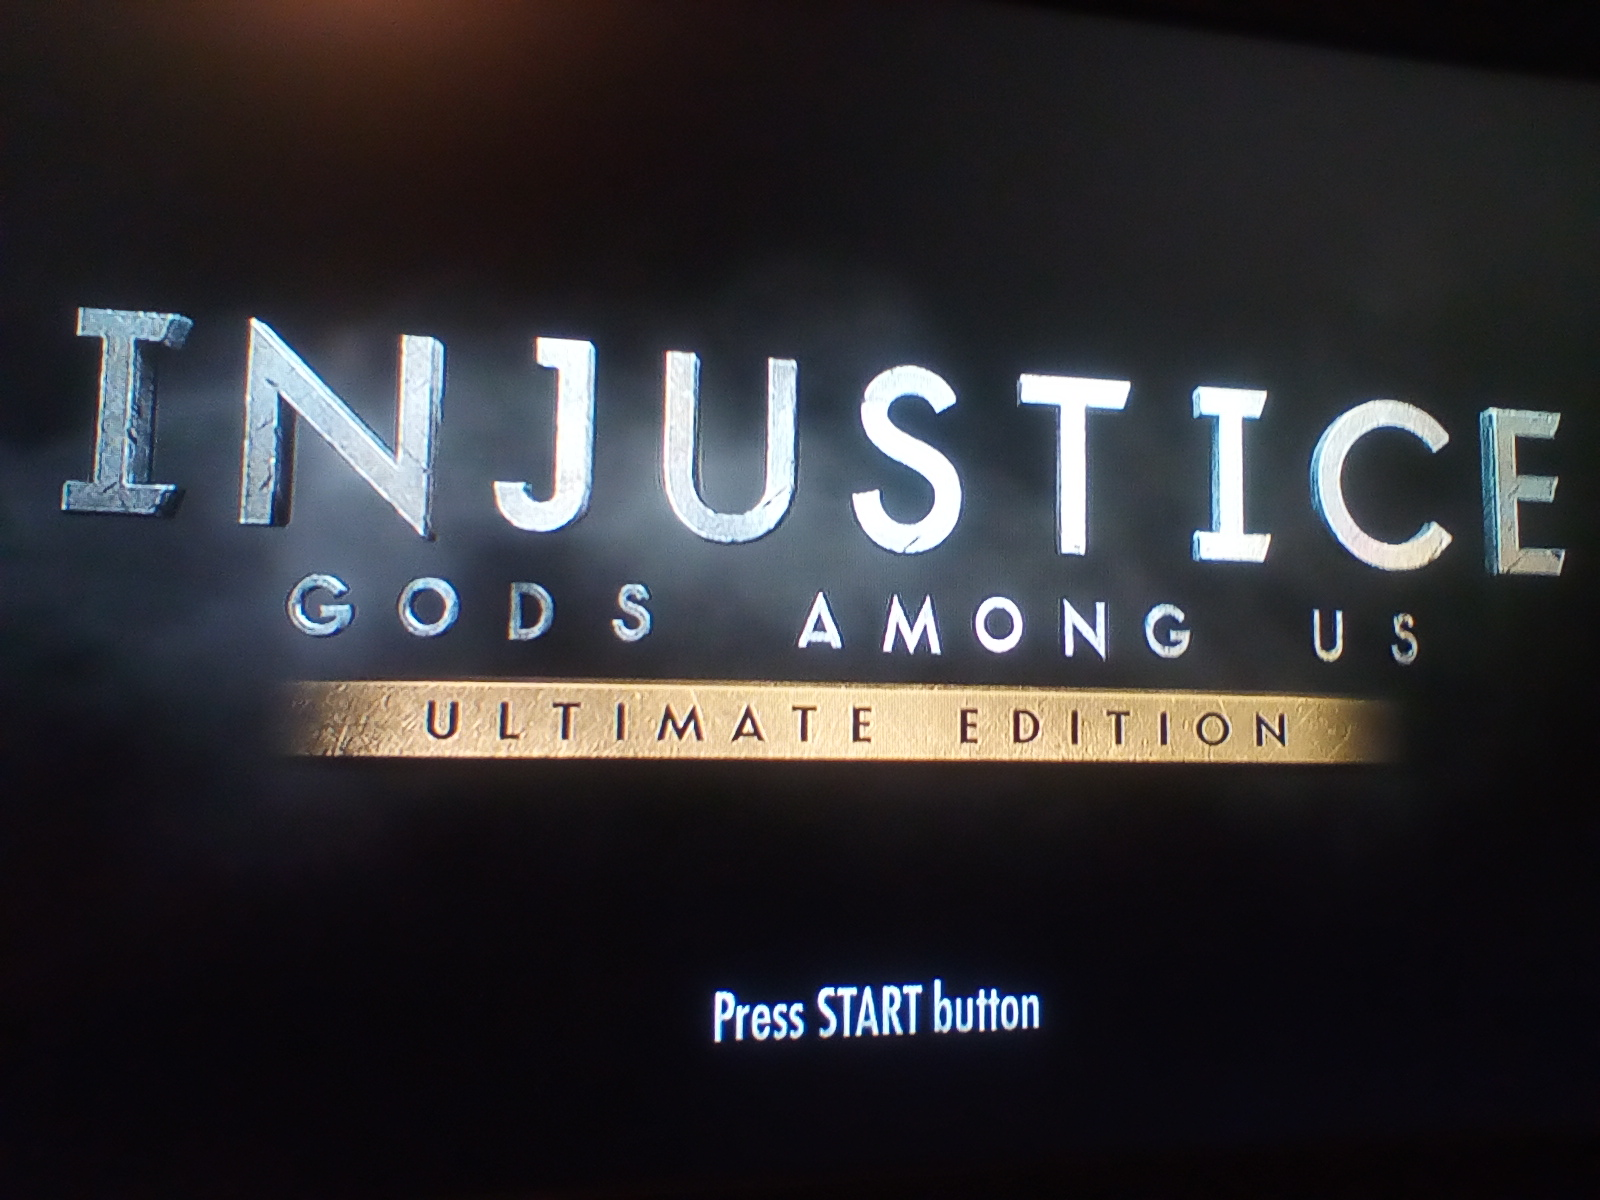 JML101582: Injustice: Gods Among Us: Ultimate Edition [Arcade] [Easy] (Playstation 3) 882 points on 2020-03-16 21:22:55